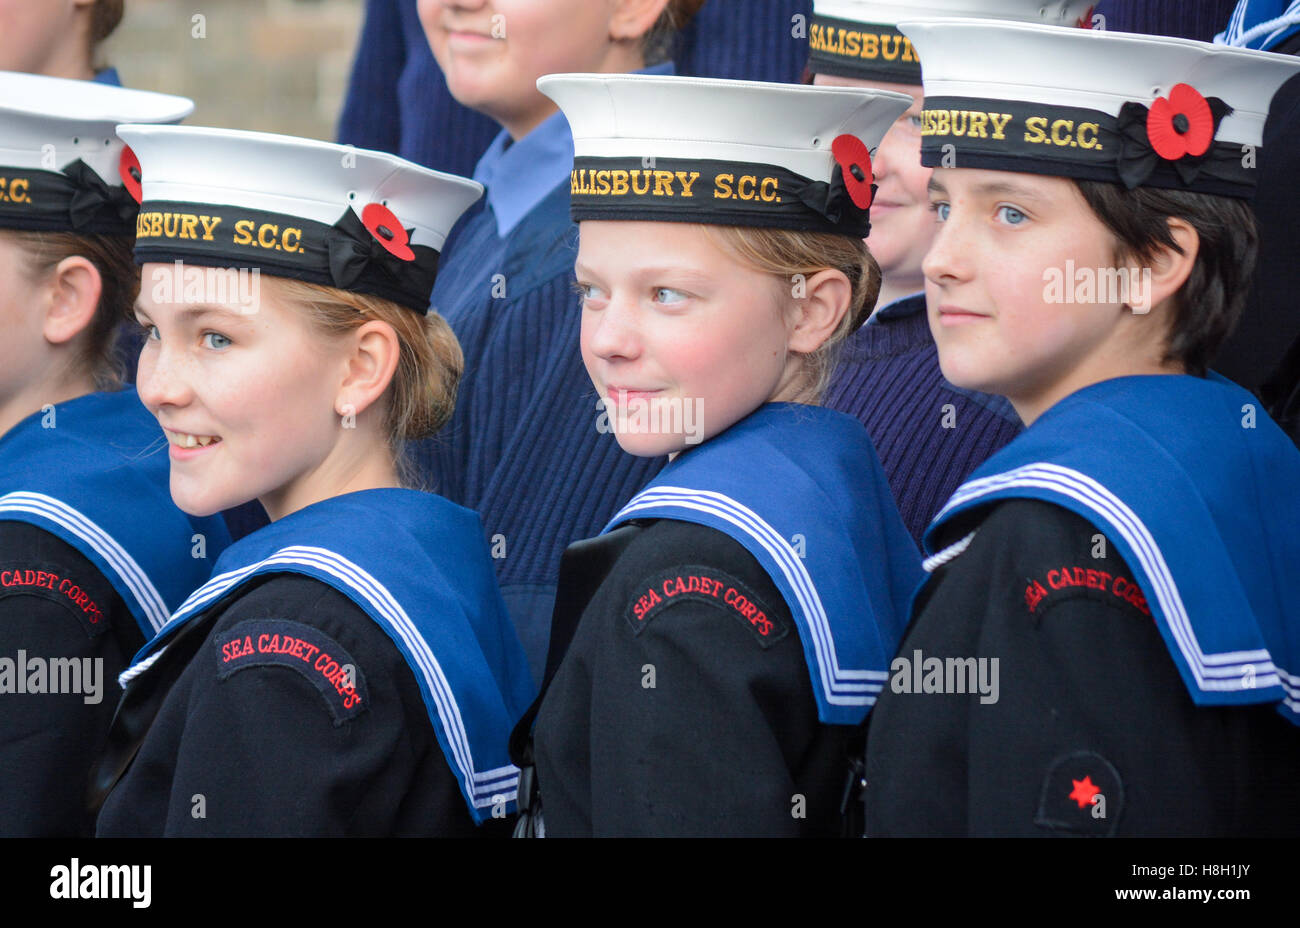 Boys and girls Sea Cadets in uniform smiling in a lighter